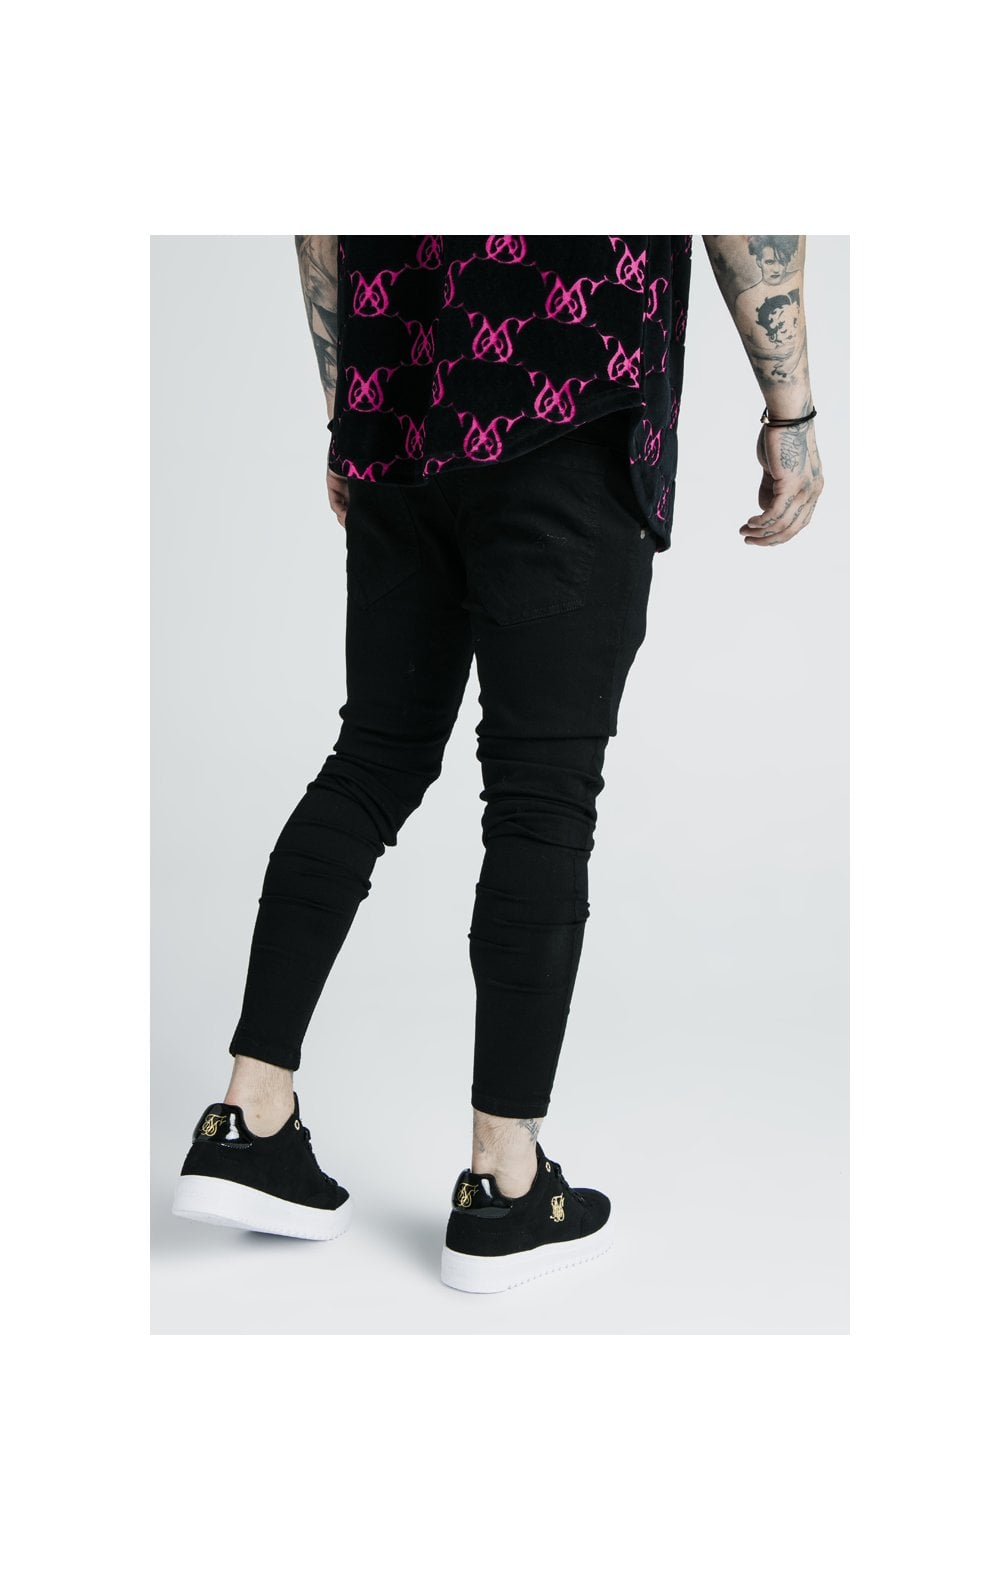 Load image into Gallery viewer, SikSilk x Dani Alves Low Rise Prestige Denims - Black (3)